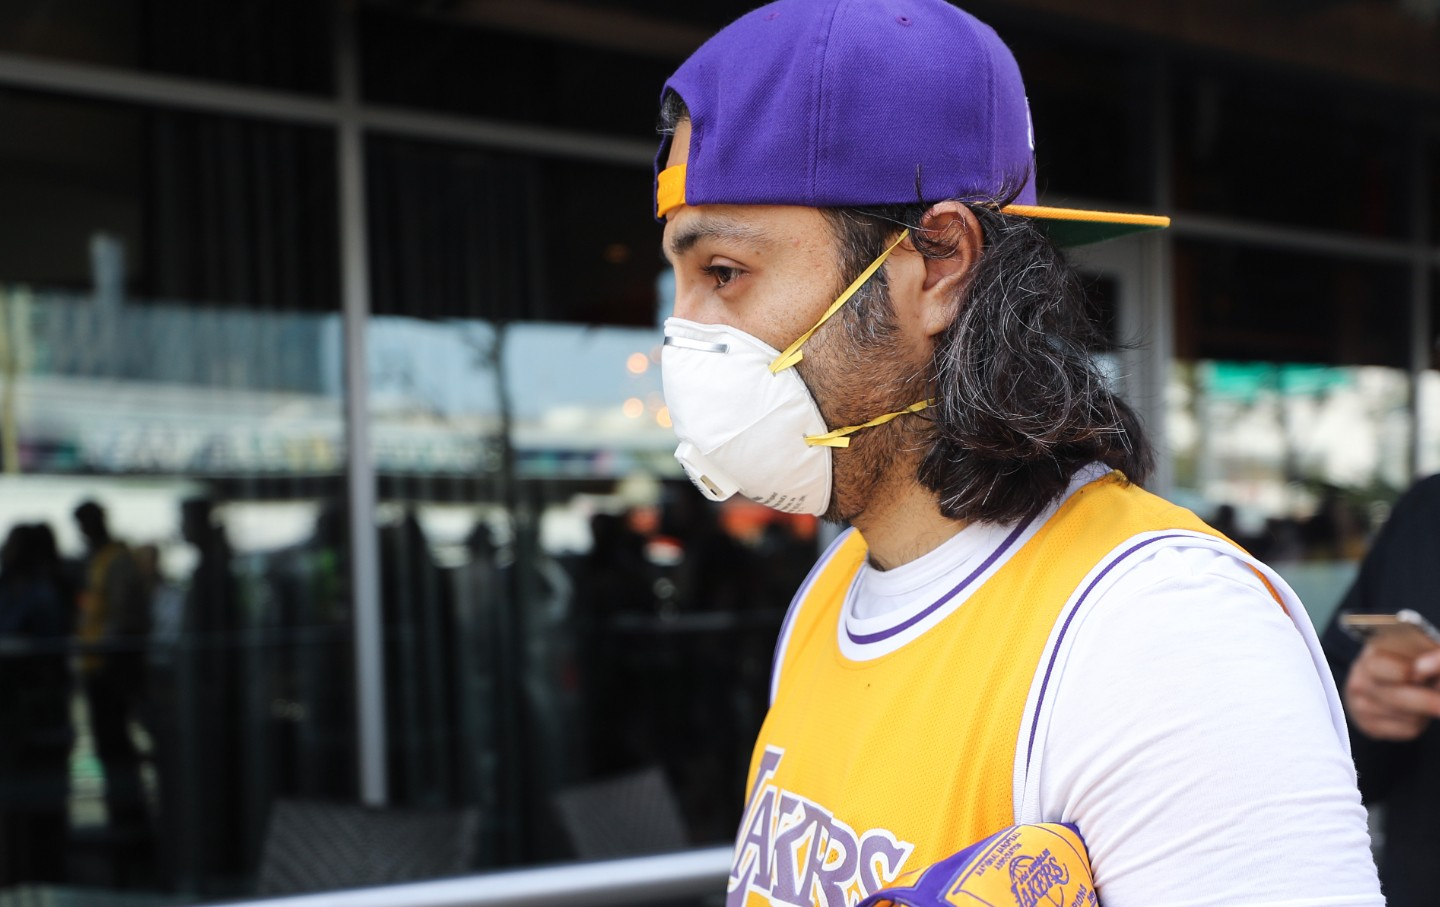 A Lakers fan wears a protective mask